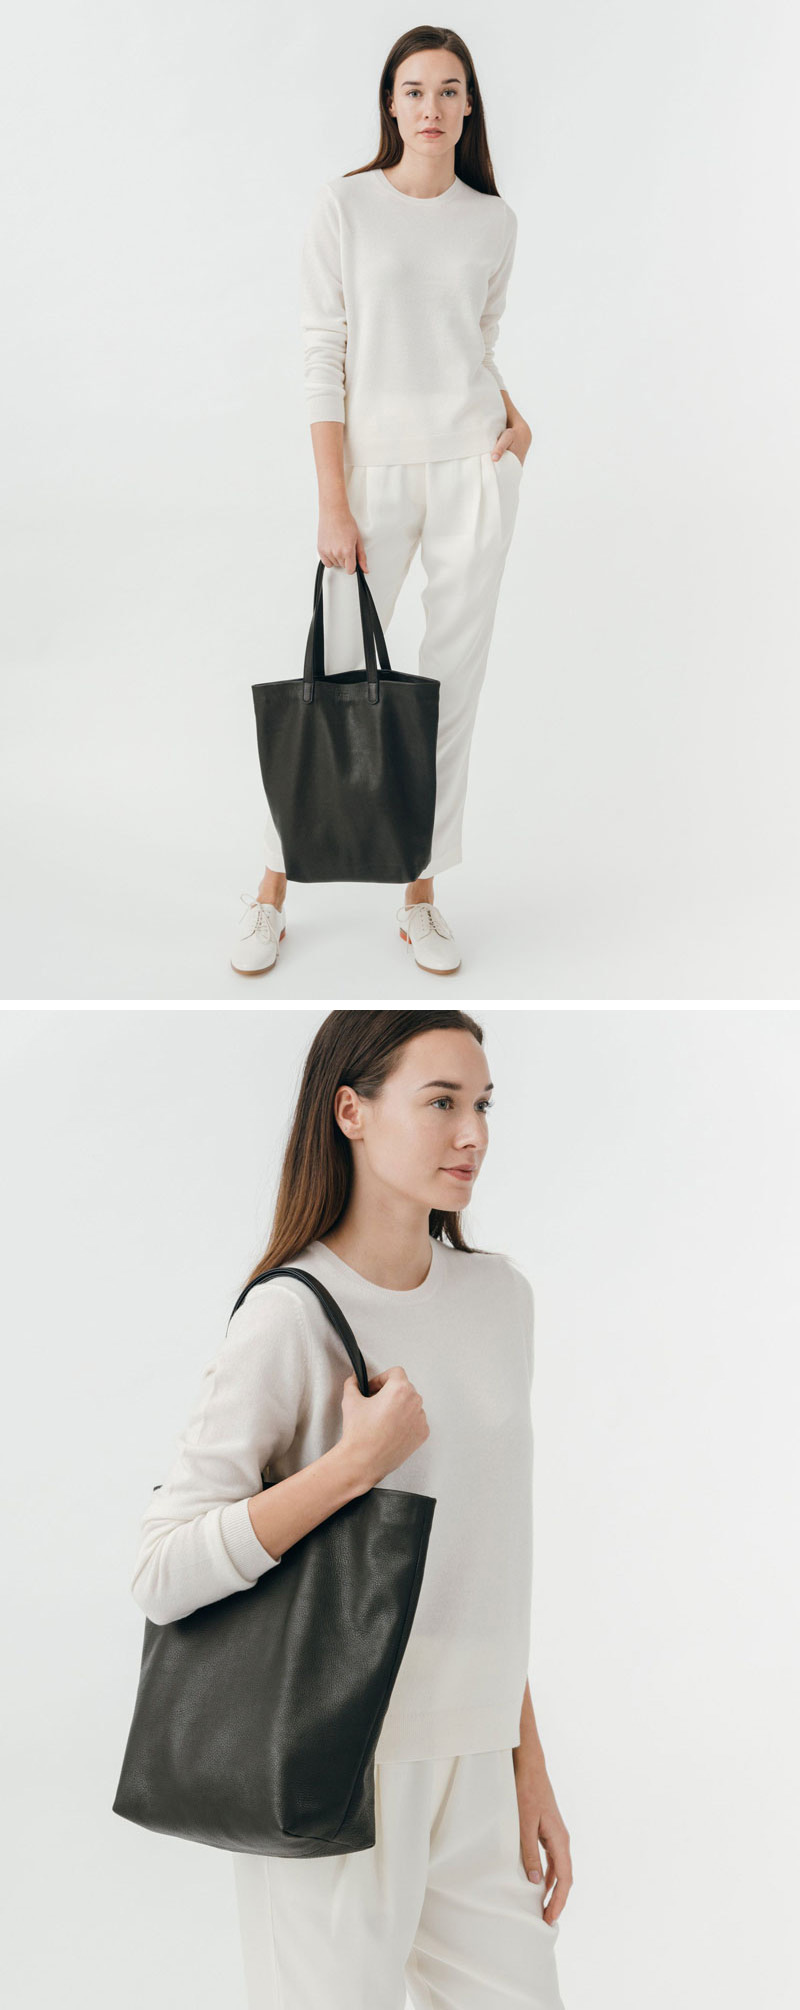 With a deep body and an internal zippered pocket you'll be able to fit all your daily essentials into this modern black leather tote.